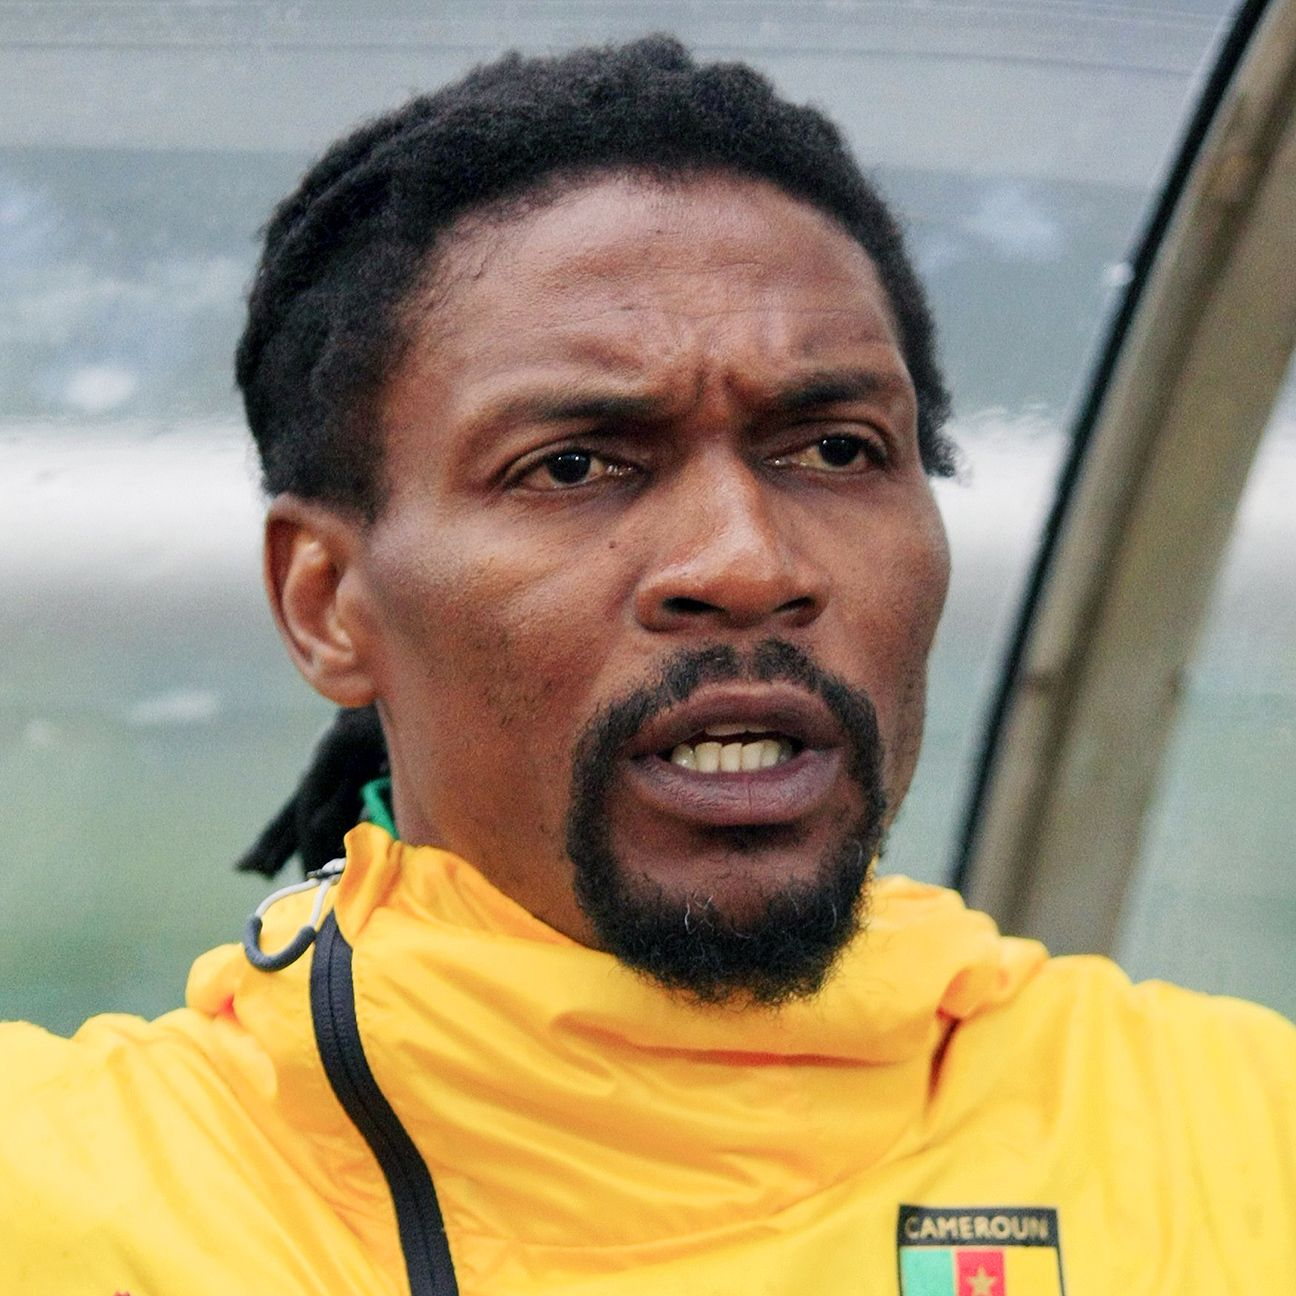 Former Cameroon international Rigobert Song is the new man in charge for Chad.